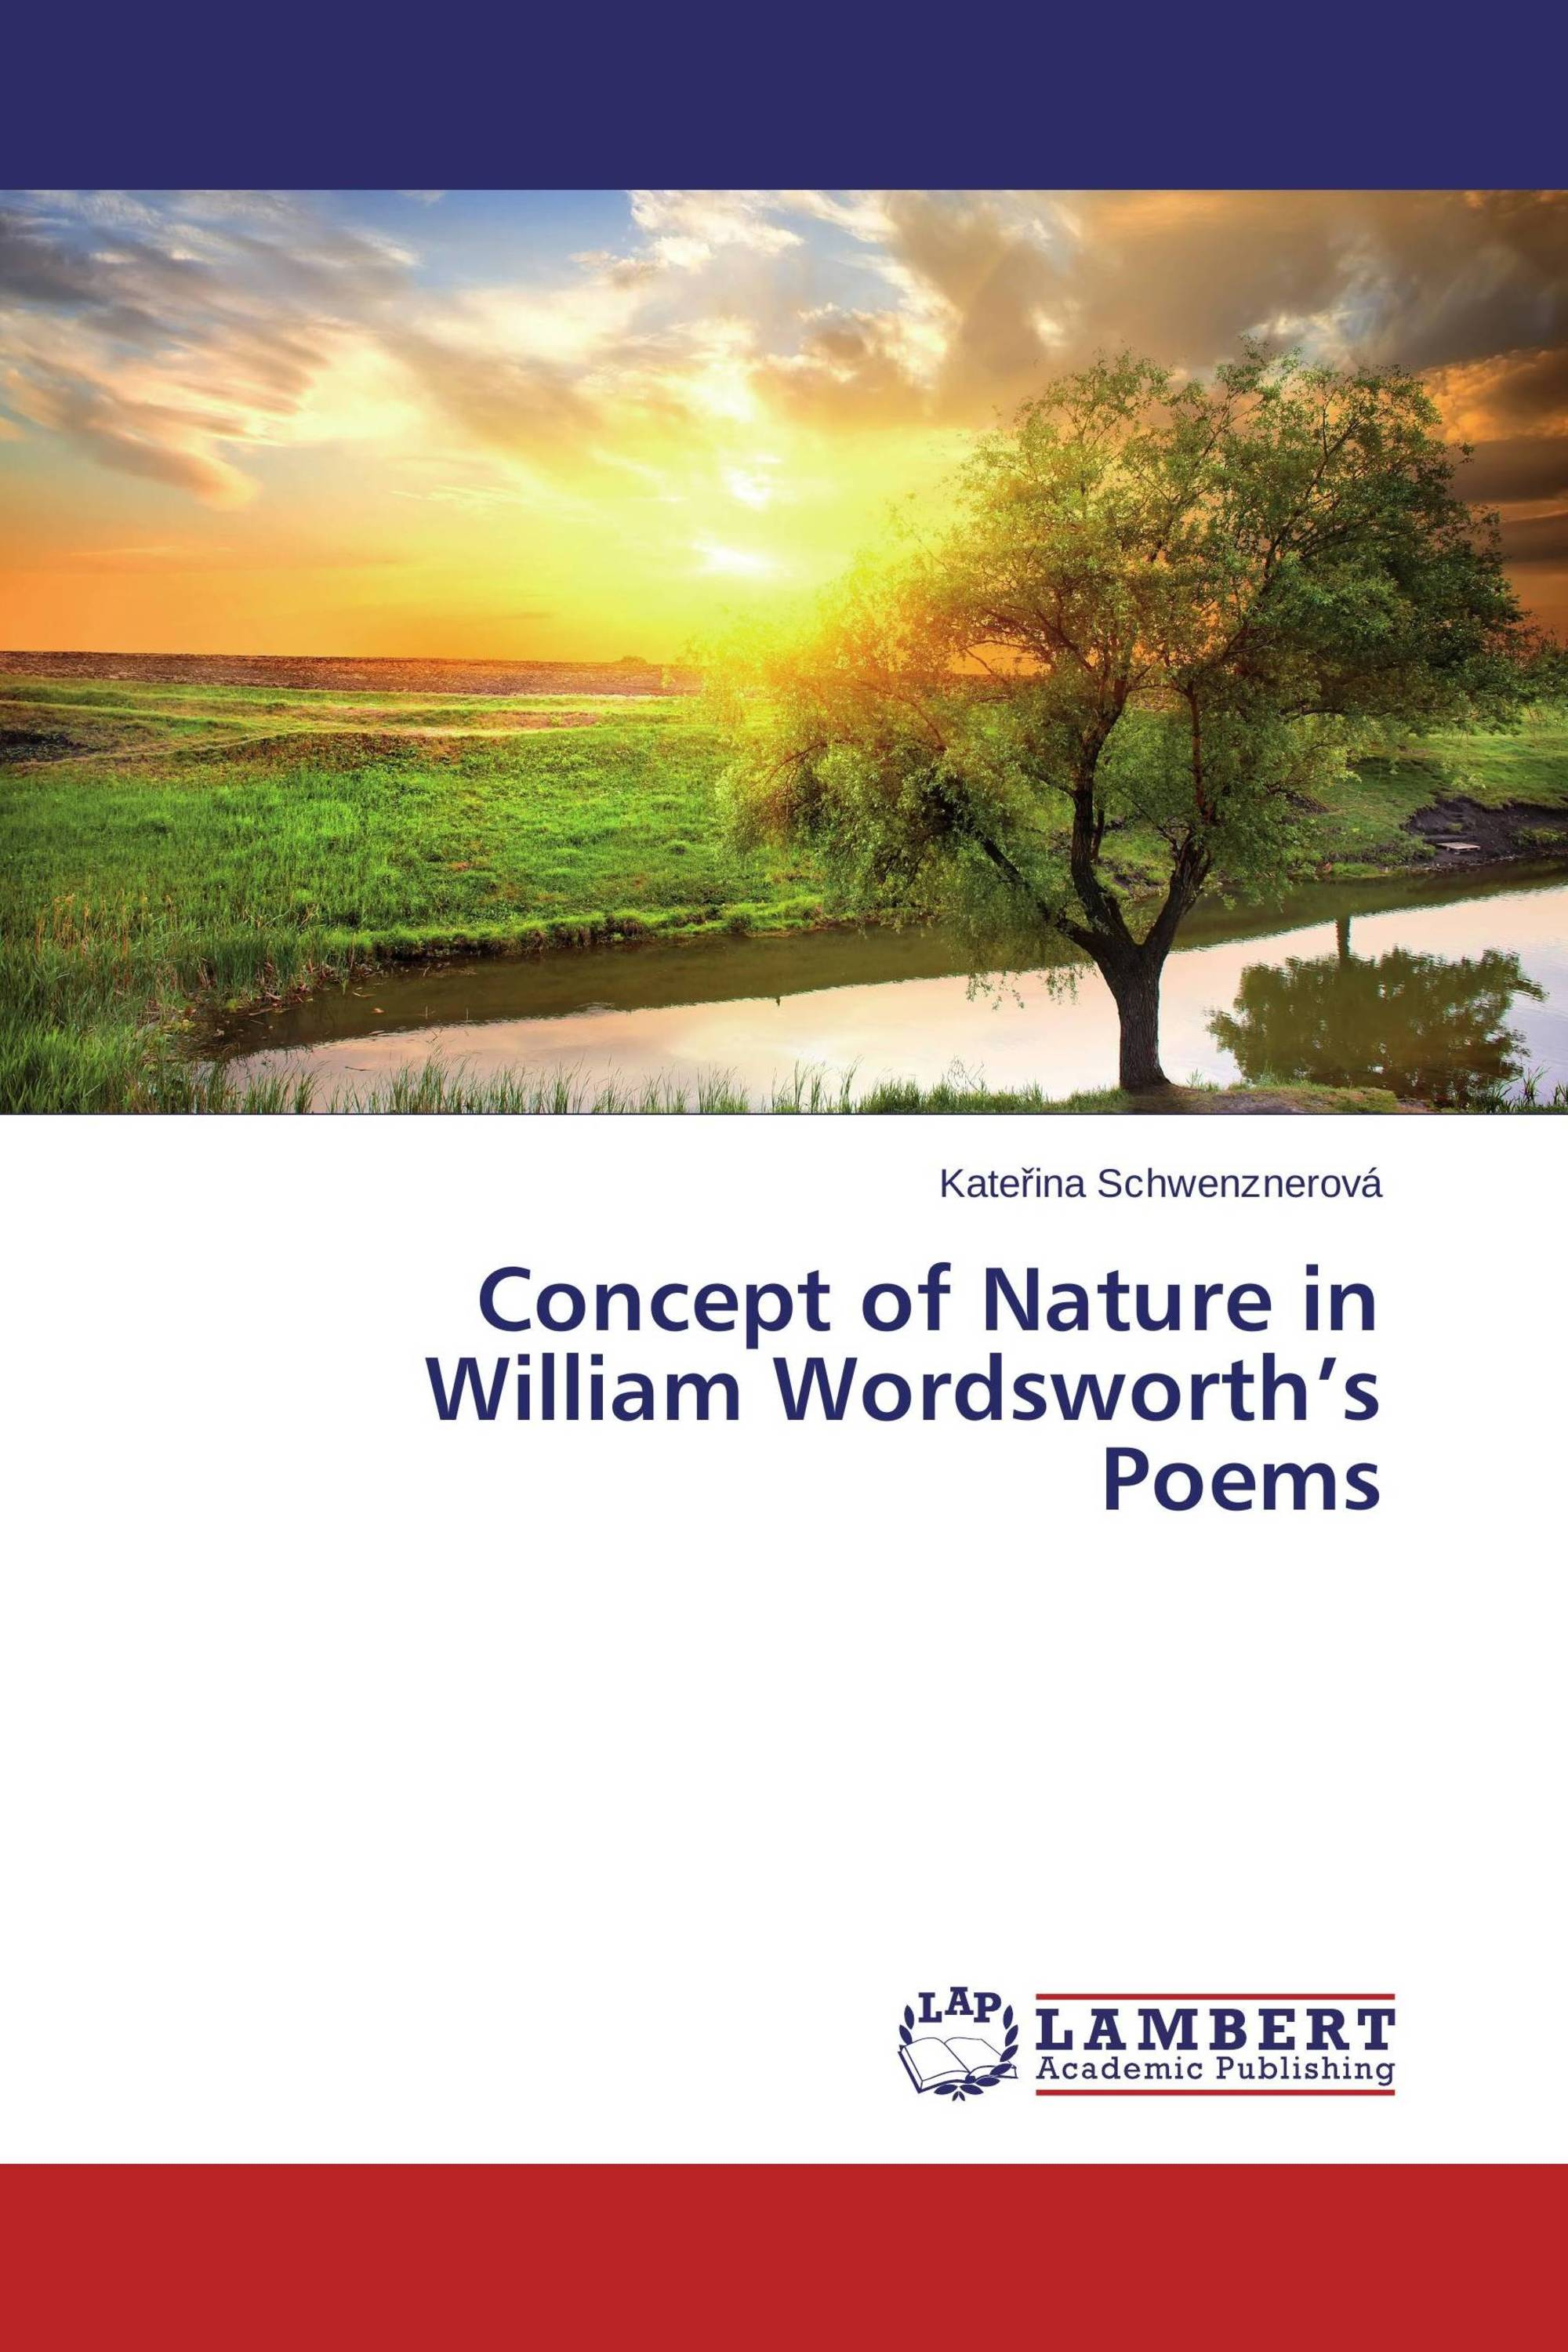 thesis wordsworth Essays and criticism on william wordsworth - critical essays  from the tradition  of british empirical philosophy—from john locke's essay concerning human.